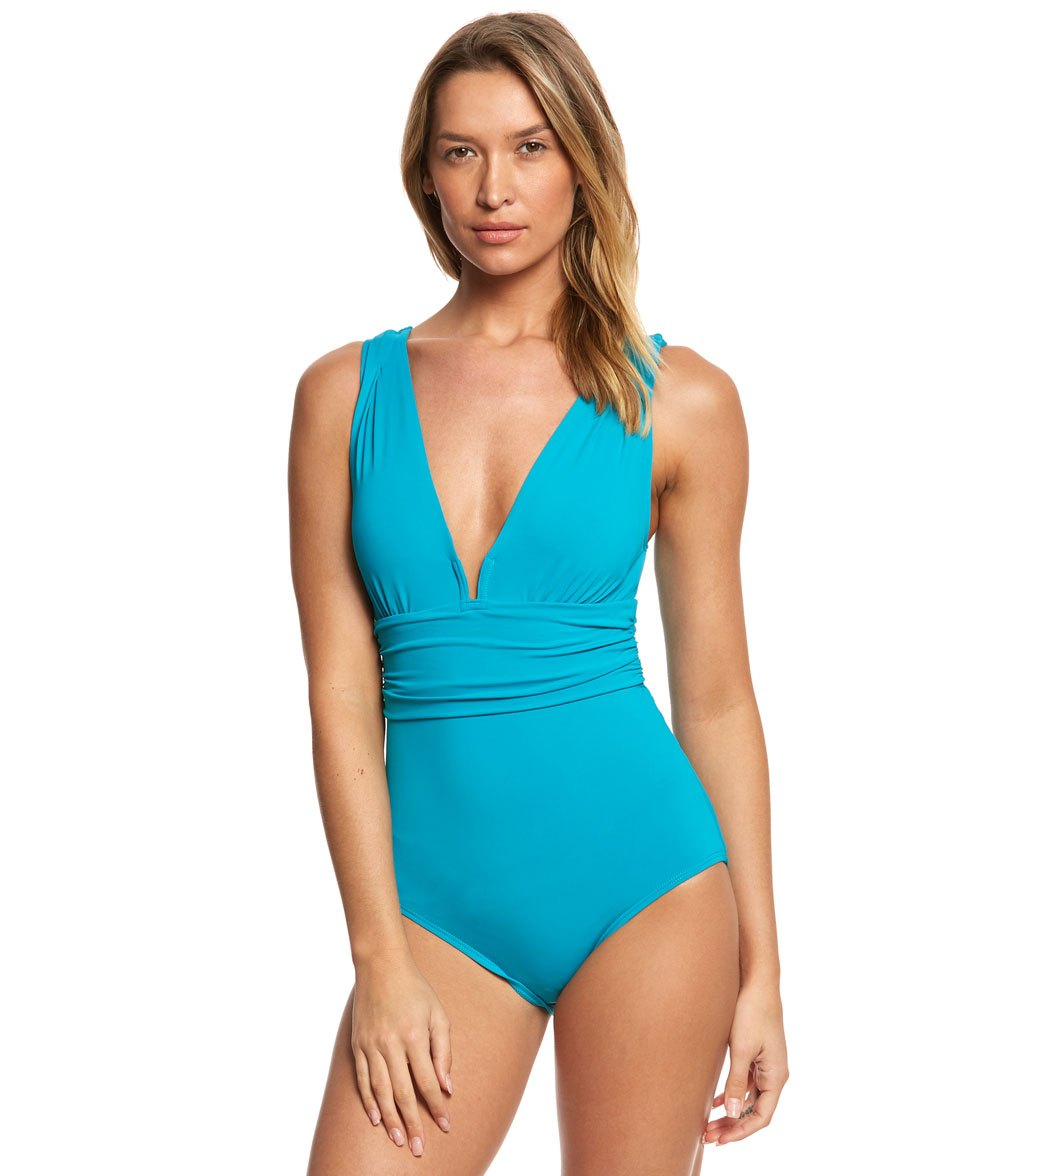 0f9f1c8506bcb Coco Reef Contours Keepsake Emerald Cut One Piece Swimsuit (B/C Cup ...